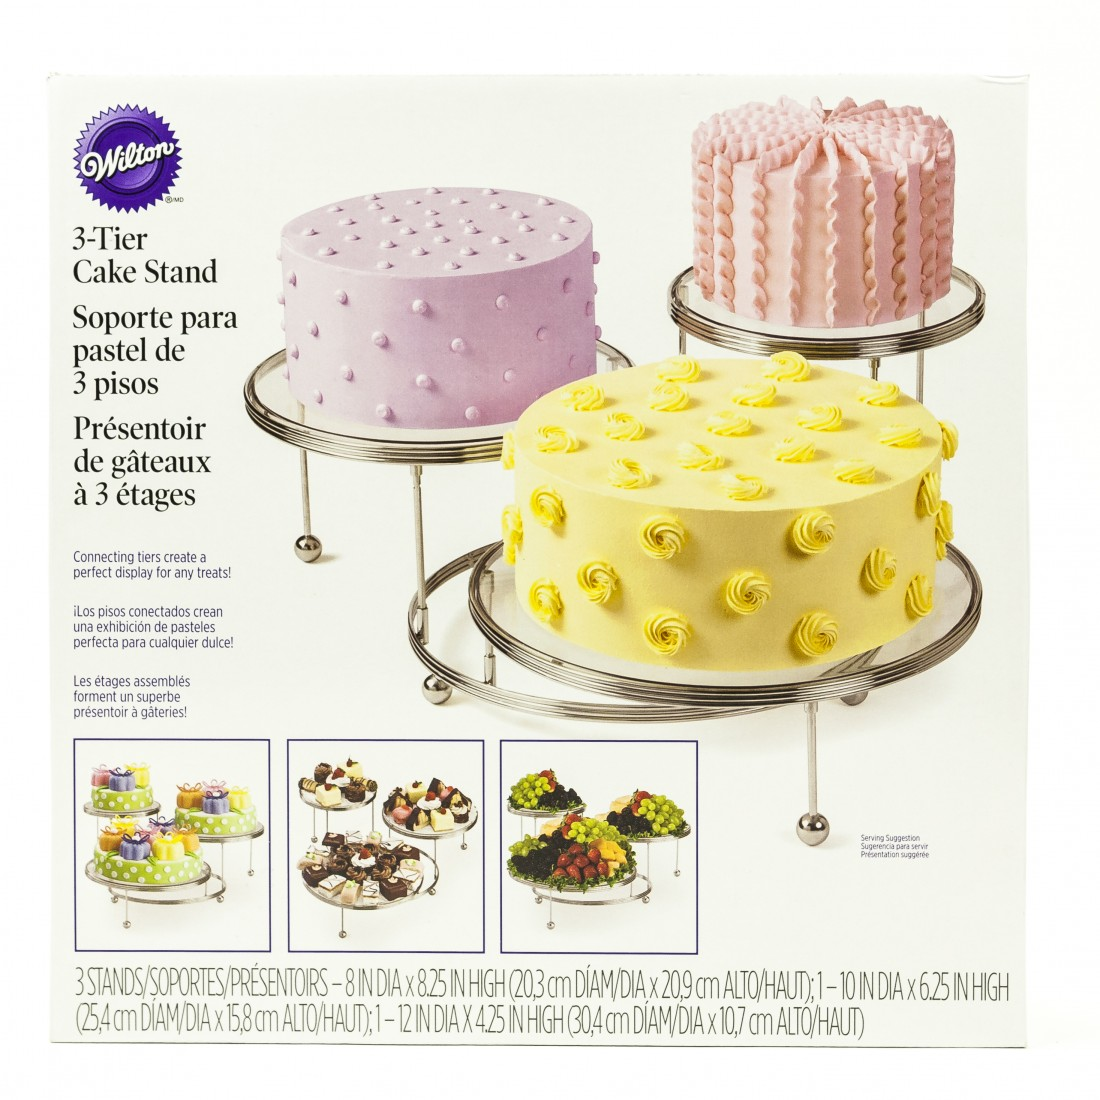 Wilton Cakes N More 3 Tiered Party Stands Are Great For Showcasing An Desserts Contemporary Stairstep Stand With Crystal Clear Plates Puts The Focus